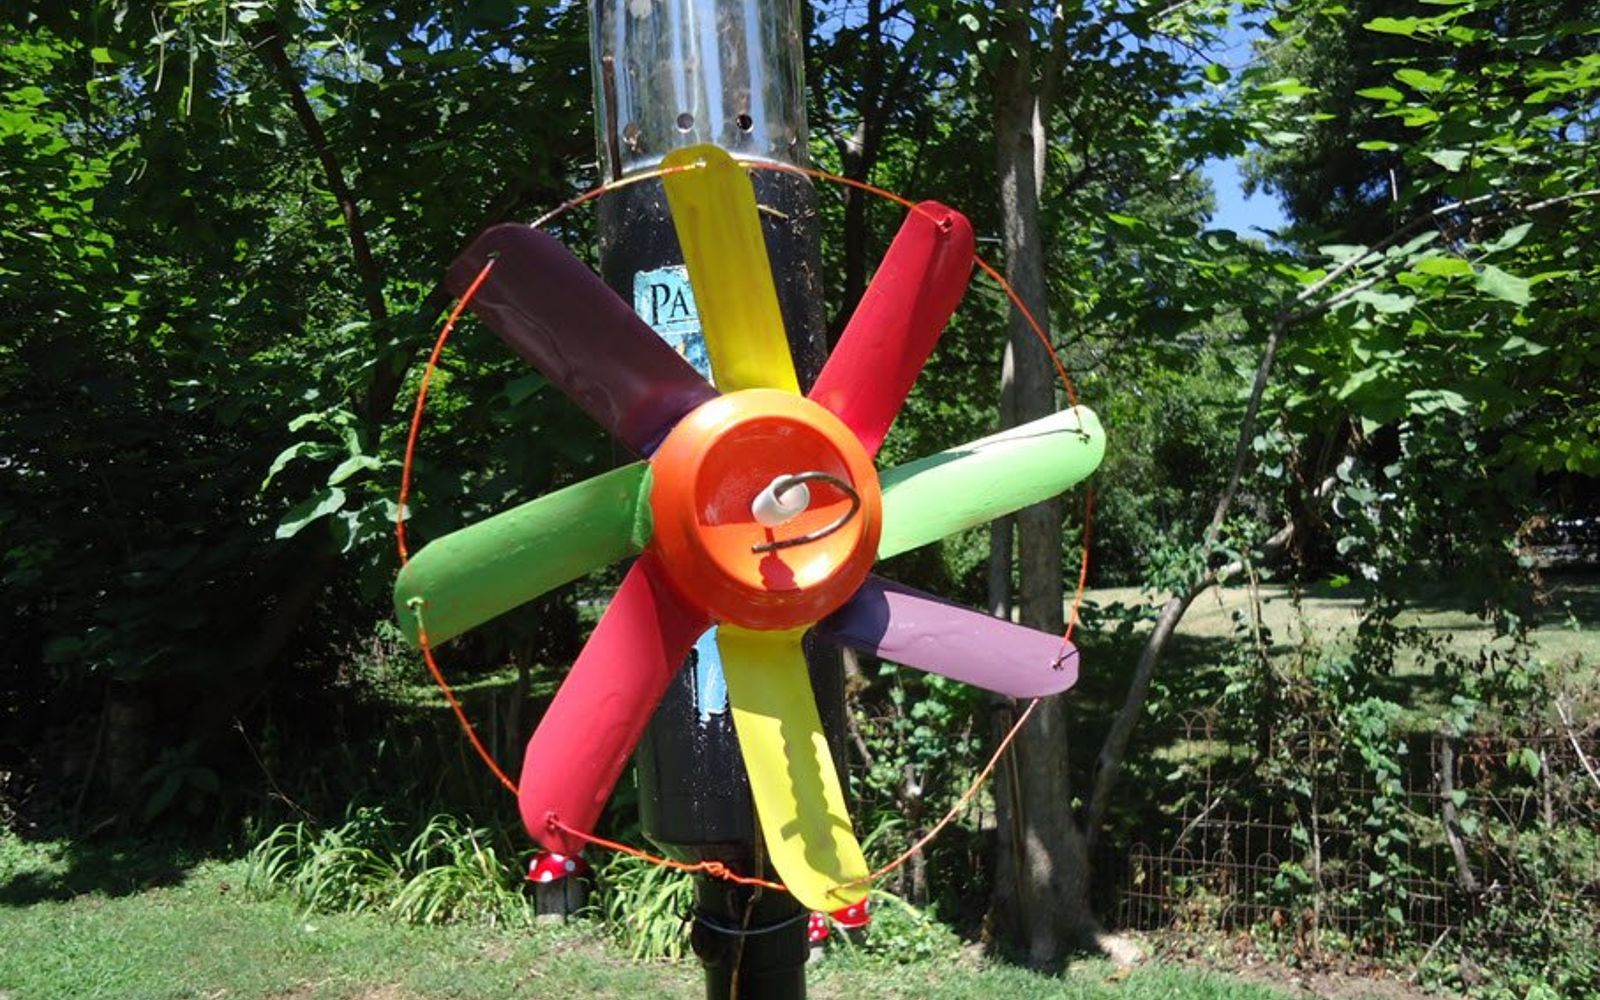 s 15 lovely repurposed items perfect for your garden, Snip A Soda Can Into A Wind Spinner